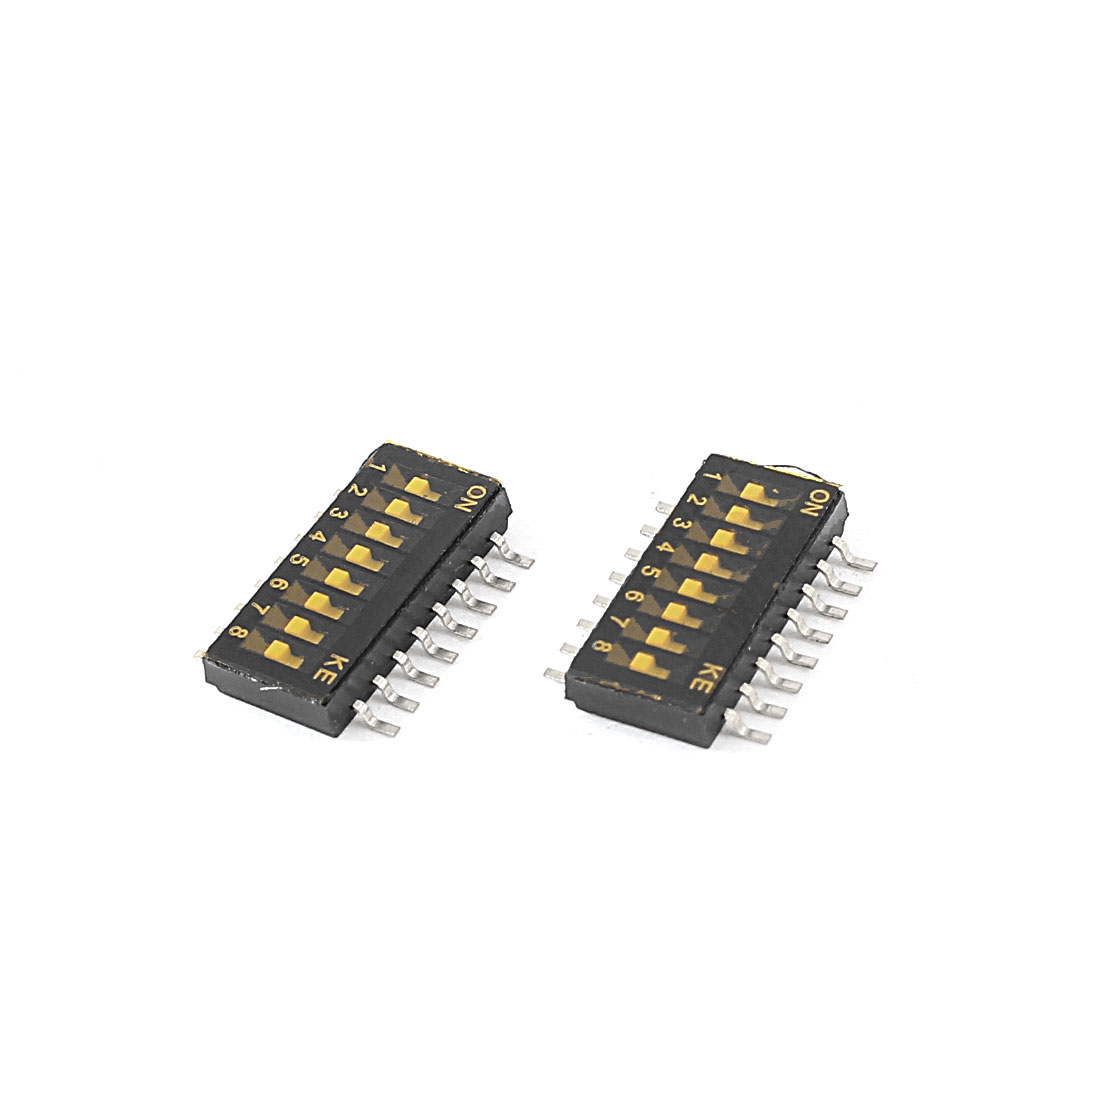 2pcs 16 Pin 1.27mm Spacing 8 Position Half Pitch Surface Mount DIP Switch